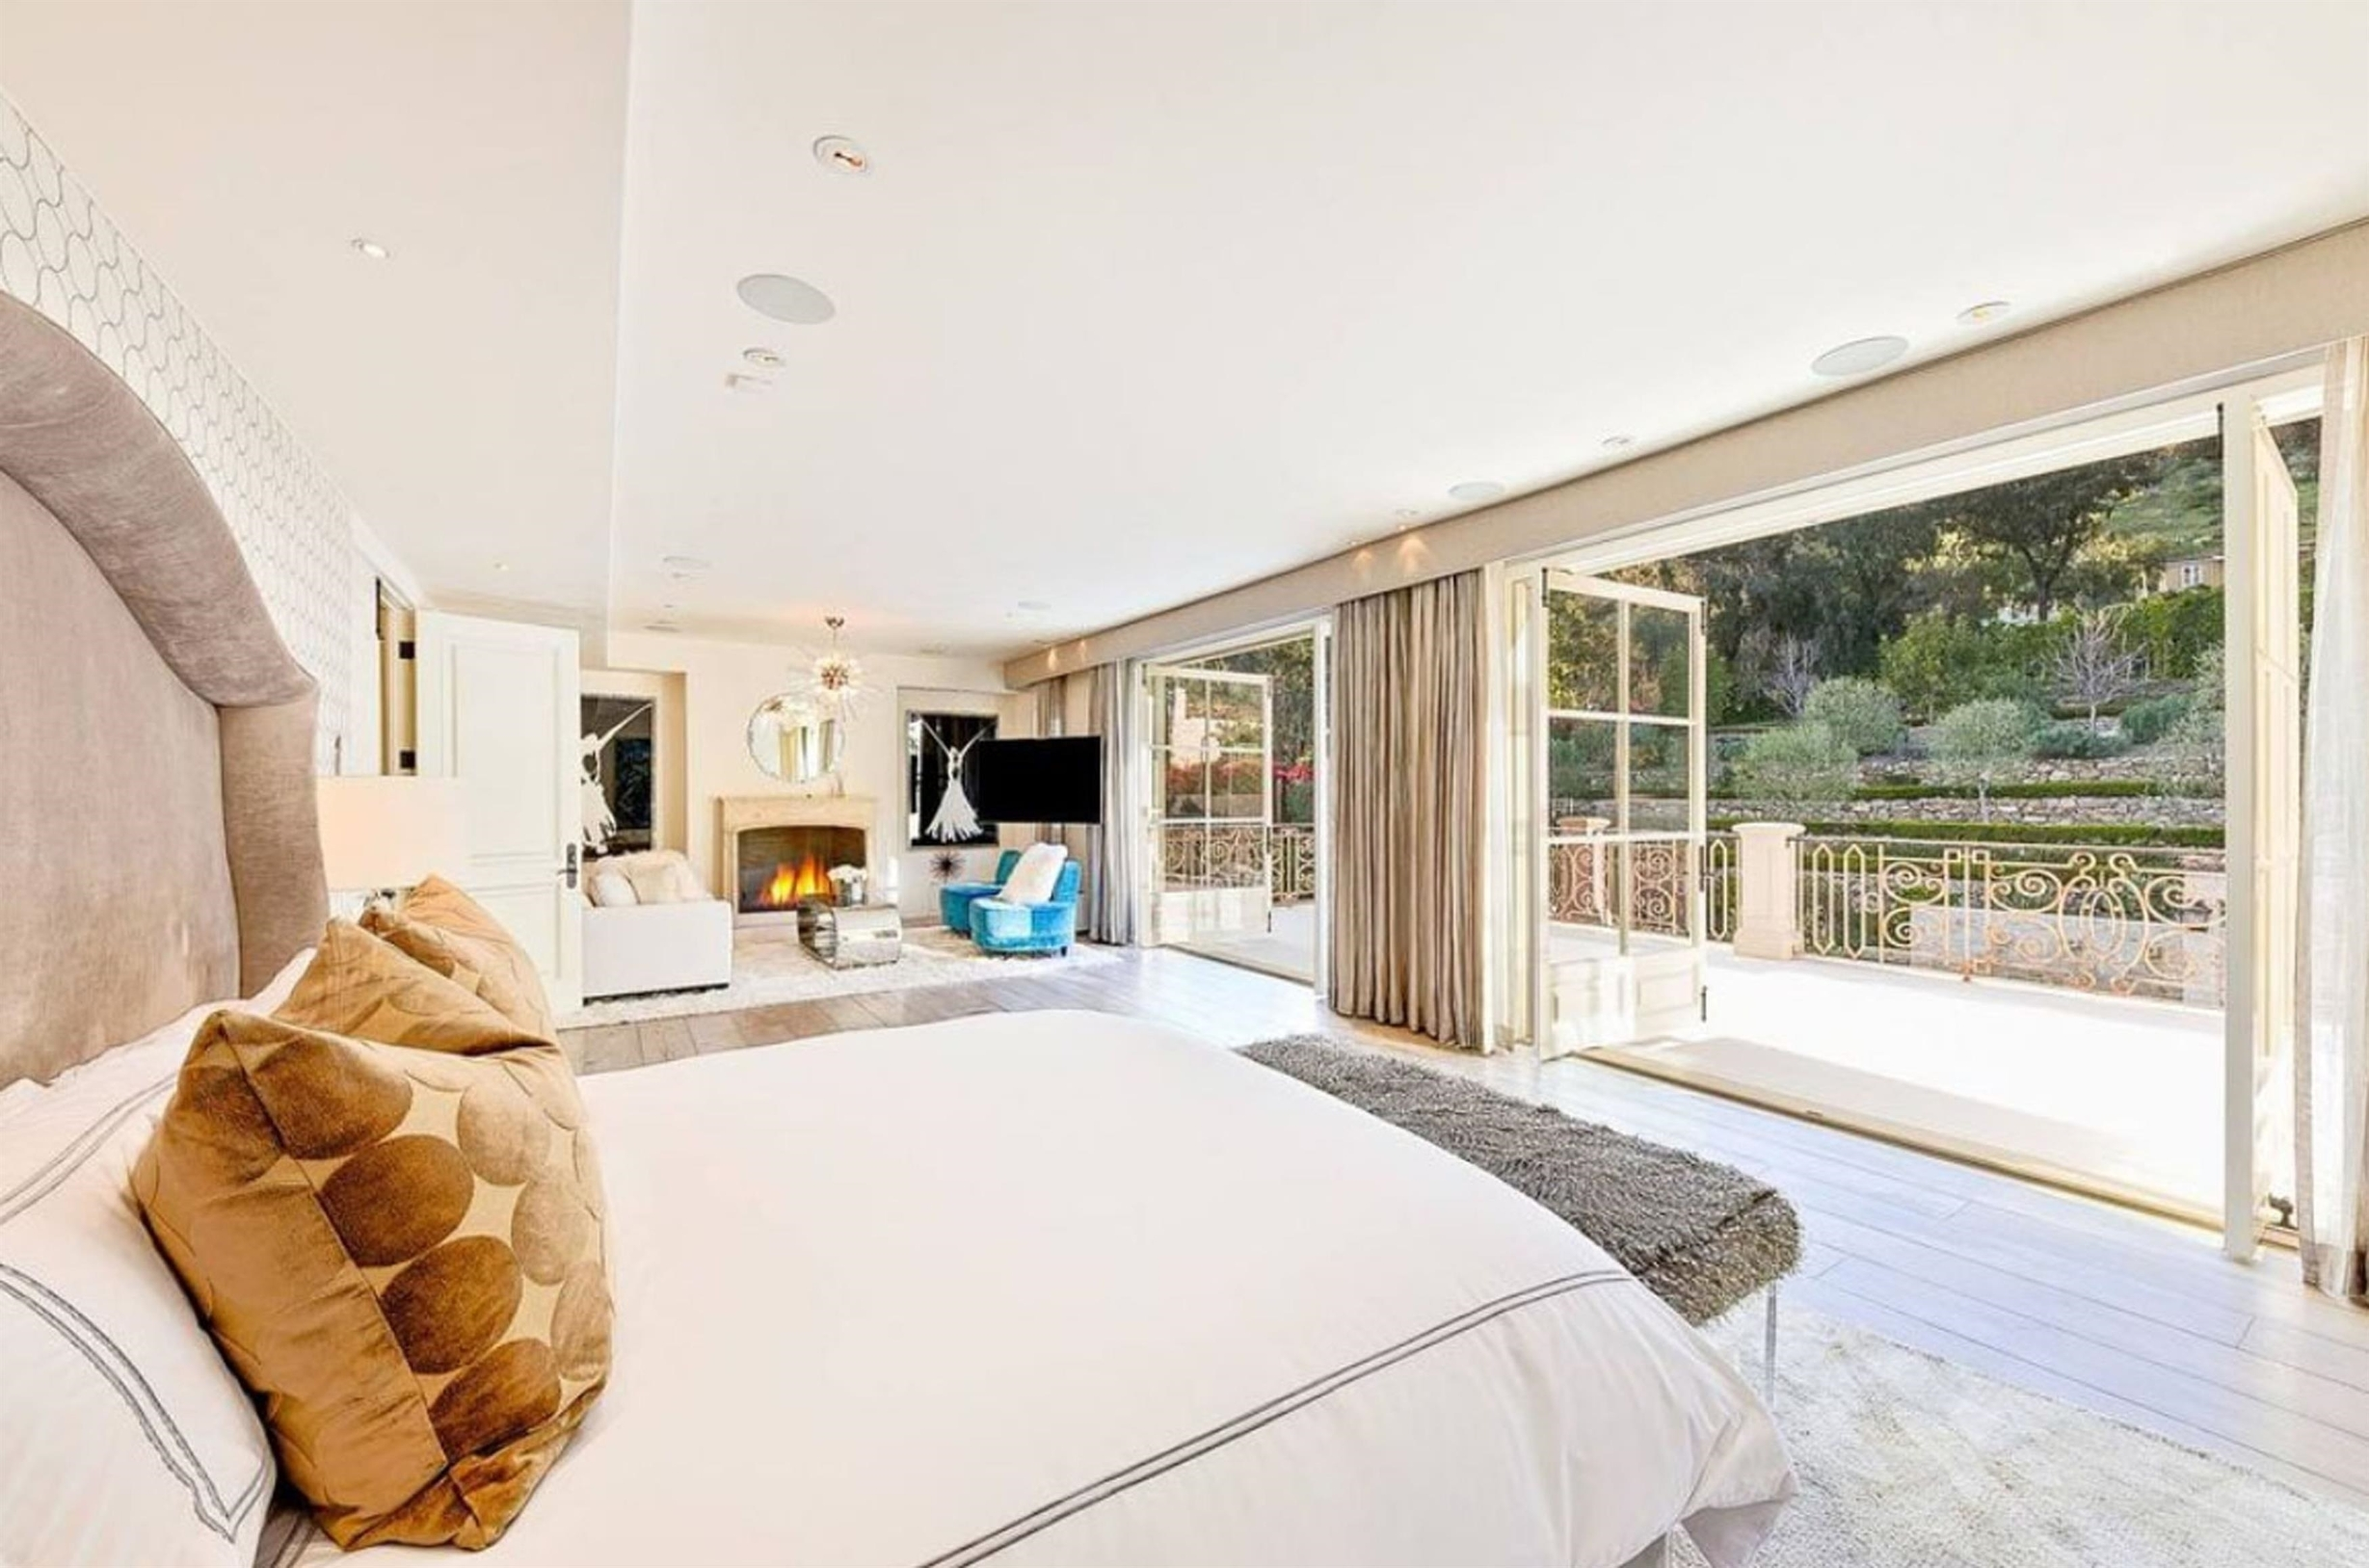 Los Angeles, CA  - Prince Harry and Meghan Markle eyeing Kylie Jenner's former Malibu rental house. Although they're currently bunking up in a  million Vancouver mansion, it's long been widely speculated that the ex-royals eventually plan to settle in Los Angeles, where Markle was raised and where her mother, Doria Ragland, still resides. The residential rumours intensified when reports emerged that Harry and Markle are keen on one particular Malibu house: a hulking, European-style mansion known as Petra Manor, tucked away within an exclusive guard-gated community. Reports have the home worth between  million and   million. Malibu's Petra Manor was once home to the biggest influencers of them all — 22-year-old lip kit tycoon Kylie Jenner, who rented the house over the summer 2018. Jenner bunked up there with her ex-bestie, fellow influencer Jordyn Woods, and a then-newborn Stormi Webster. Petra Manor was custom-built in 2015 by David Charvet and Brooke Burke, on land that they originally purchased from Mel Gibson. The giant house still appears to be jointly owned by the now-divorced couple, though they do not reside there, and the property has long serviced as a high-priced rental home for visiting billionaires and foreign dignitaries seeking a brief taste of Malibu's legendary sunshine. The house is located within Serra Retreat, one of Malibu's few guard-gated communities and arguably the city's most private enclave — tucked into the canyon-side foothills and bordered by rugged open land, but still just a quick jaunt to the trendy shops and restaurants in downtown Malibu. Although it's hidden away within that securely guard-gated community, the property itself is also walled and gated for ultimate peace of mind. Surrounded by mature oak and sycamore trees, the stone manor spans more than 12,000 sq ft of living space, with 8 bedrooms and a whopping 10 bathrooms — ample space for a young family and plenty of attitude. Inside, there's a double-height foyer with a grand staircase, a marble-topped wet bar, professional-style screening room, eat-in kitchen with top-of-the-line stainless appliances and a wine cellar capable of storing hundreds of bottles. Other features include massive living and family rooms, both outfitted with fireplaces, an upstairs master with a spa-style bath and private balcony, and even an at-home dance studio. Outdoors, there's mature olive trees, formal gardens, outdoor lounge, resort-style swimming pool with Baja shelf.  *BACKGR  BACKGRID UK 24 FEBRUARY 2020, Image: 500637764, License: Rights-managed, Restrictions: RIGHTS: WORLDWIDE EXCEPT IN UNITED STATES, Model Release: no, Credit line: VRBO / BACKGRID / Backgrid UK / Profimedia